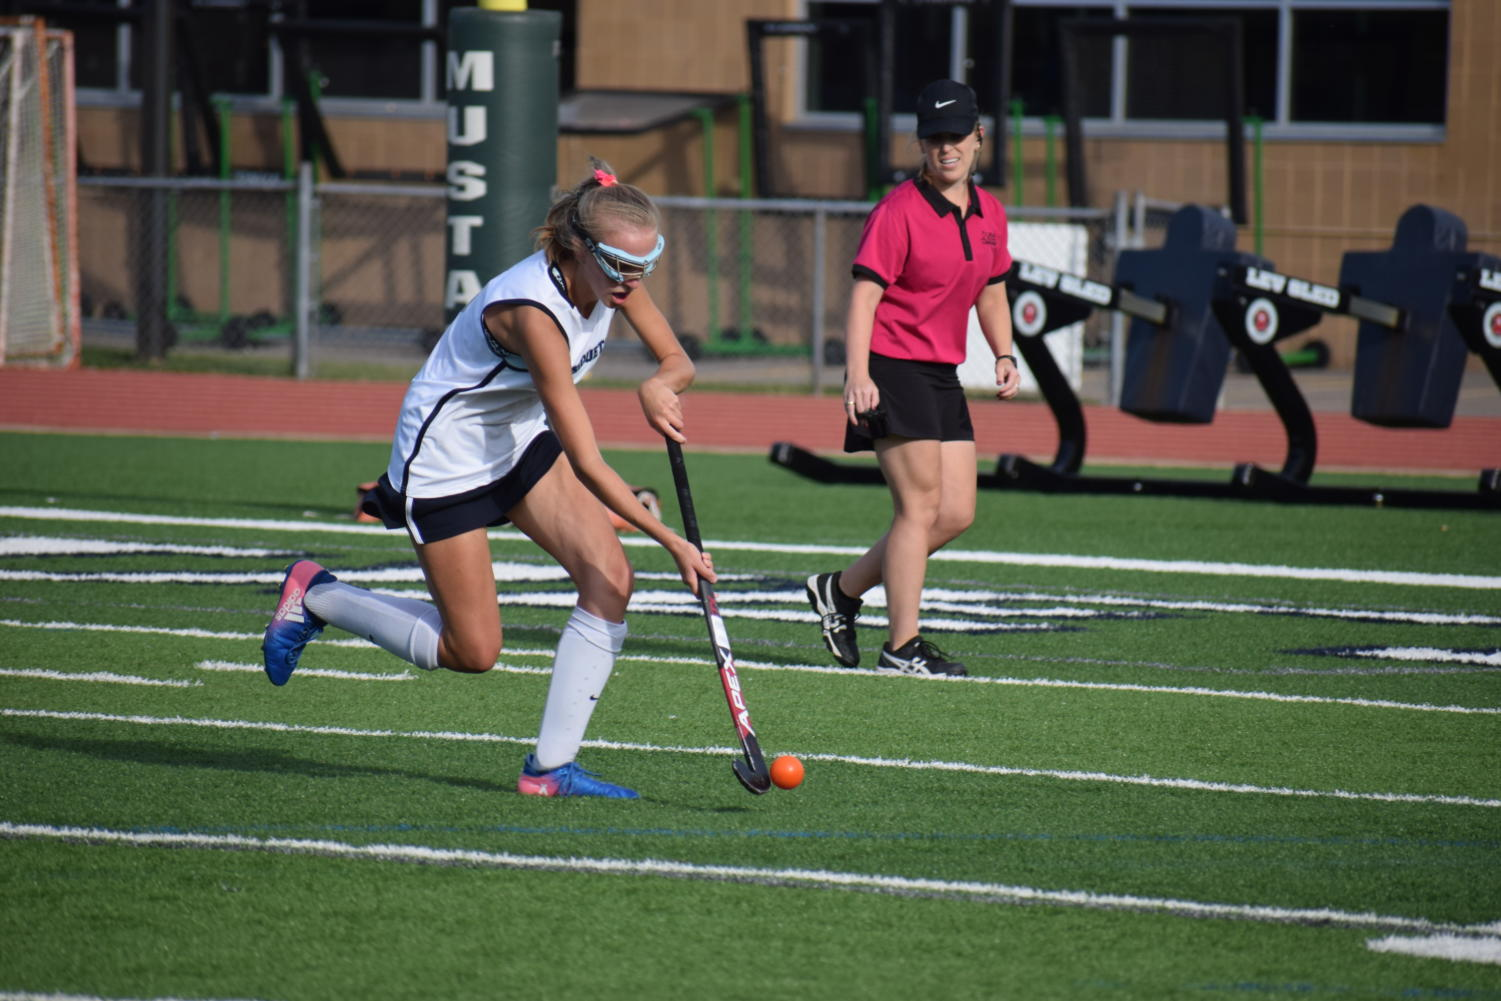 Haley+Meyer%2C+senior%2C+has+been+playing+on+the+field+hockey+team+for+four+years.+%E2%80%9CI%E2%80%99m+going+to+miss+the+team+because+they+have+been+great+throughout+the+years%2C%E2%80%9D+Meyer+said.+%E2%80%9CEspecially+the+seniors%2C+we+are+all+really+close.%E2%80%9D+